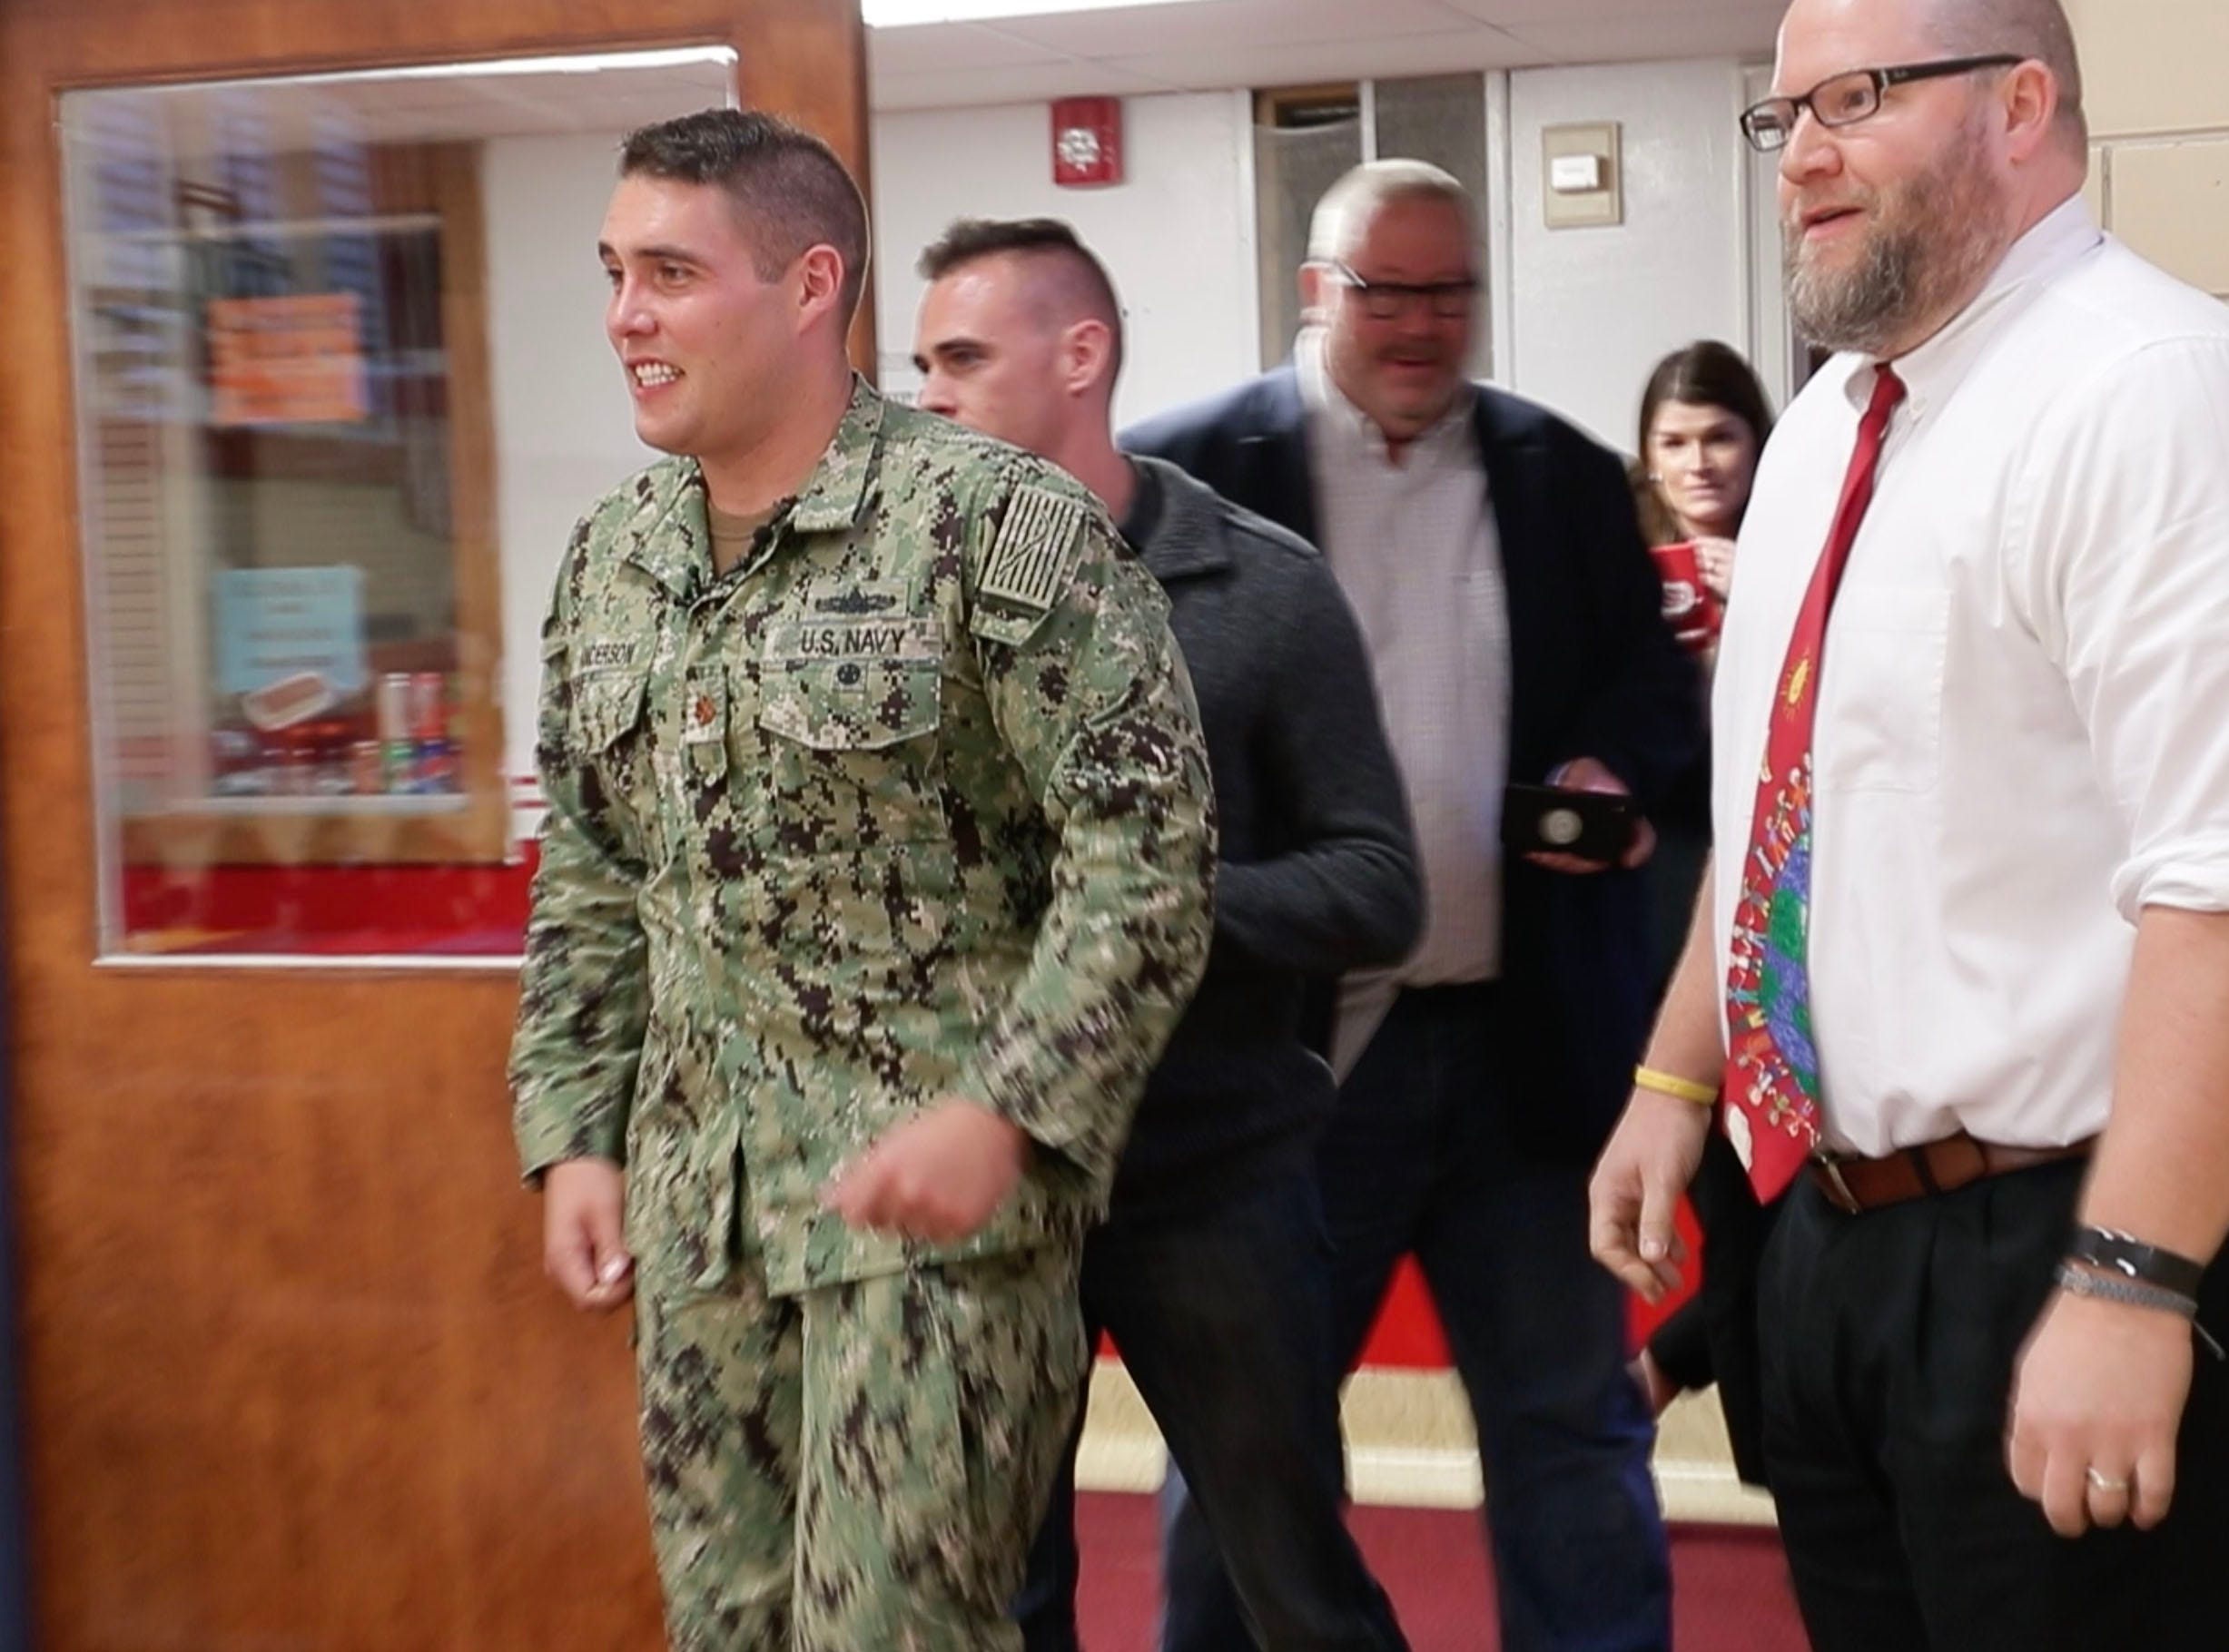 Navy Lt. Cmdr. Jon-Andrew Anderson-Ingebrigtsen enters the gym after he returned from a 20-month deployment and surprised his 7-year-old son, Ethan Anderson, a second- grader at St. Monica Catholic School in Whitefish Bay on Monday.